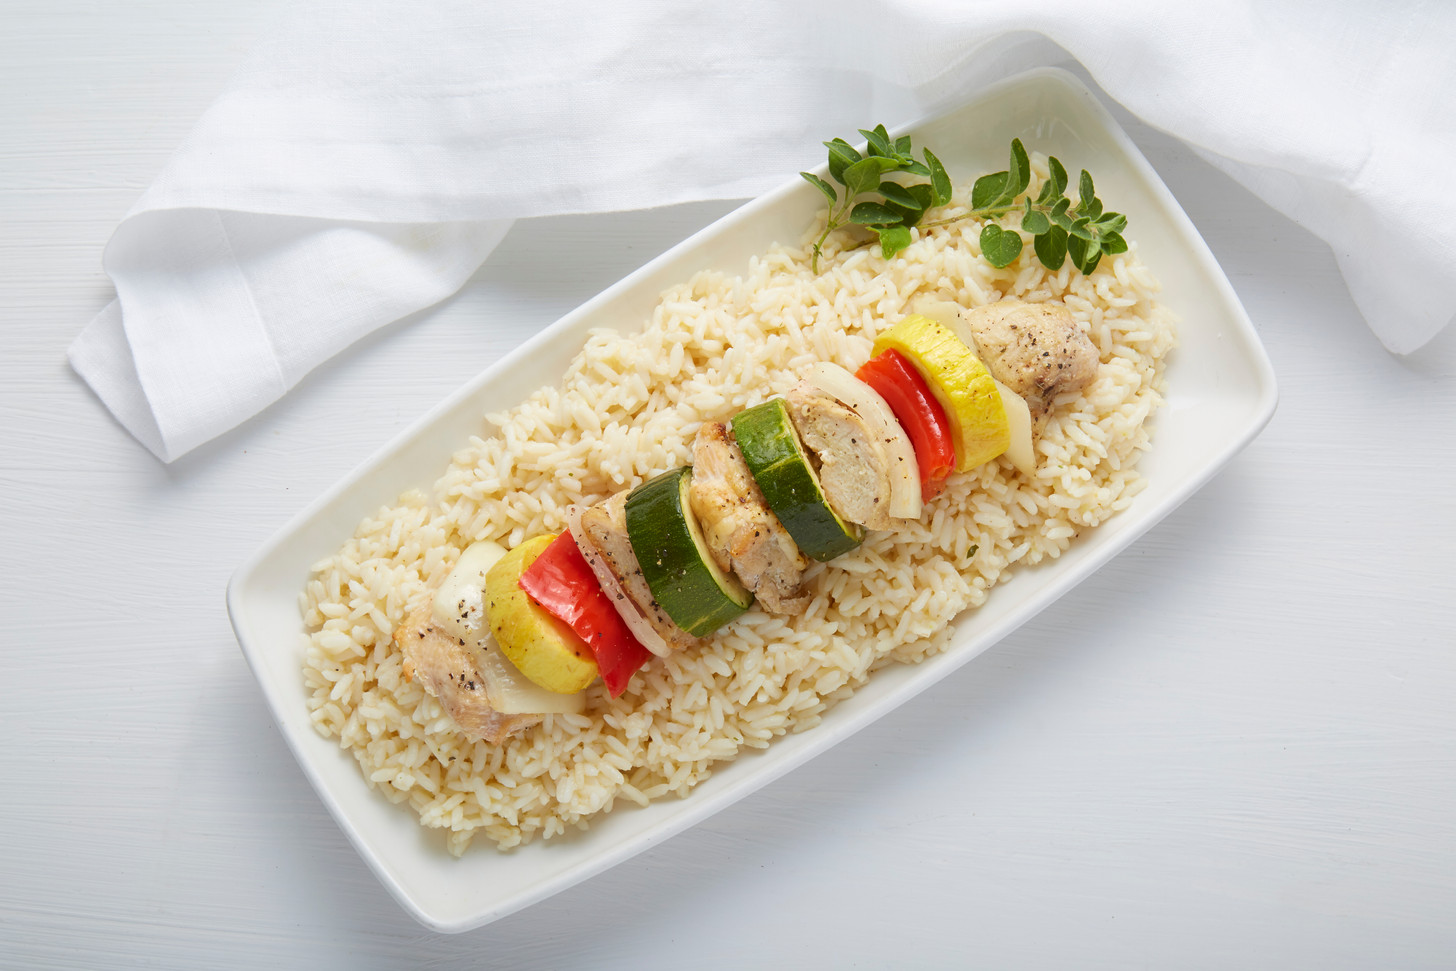 Skewerless chicken kabob over rice